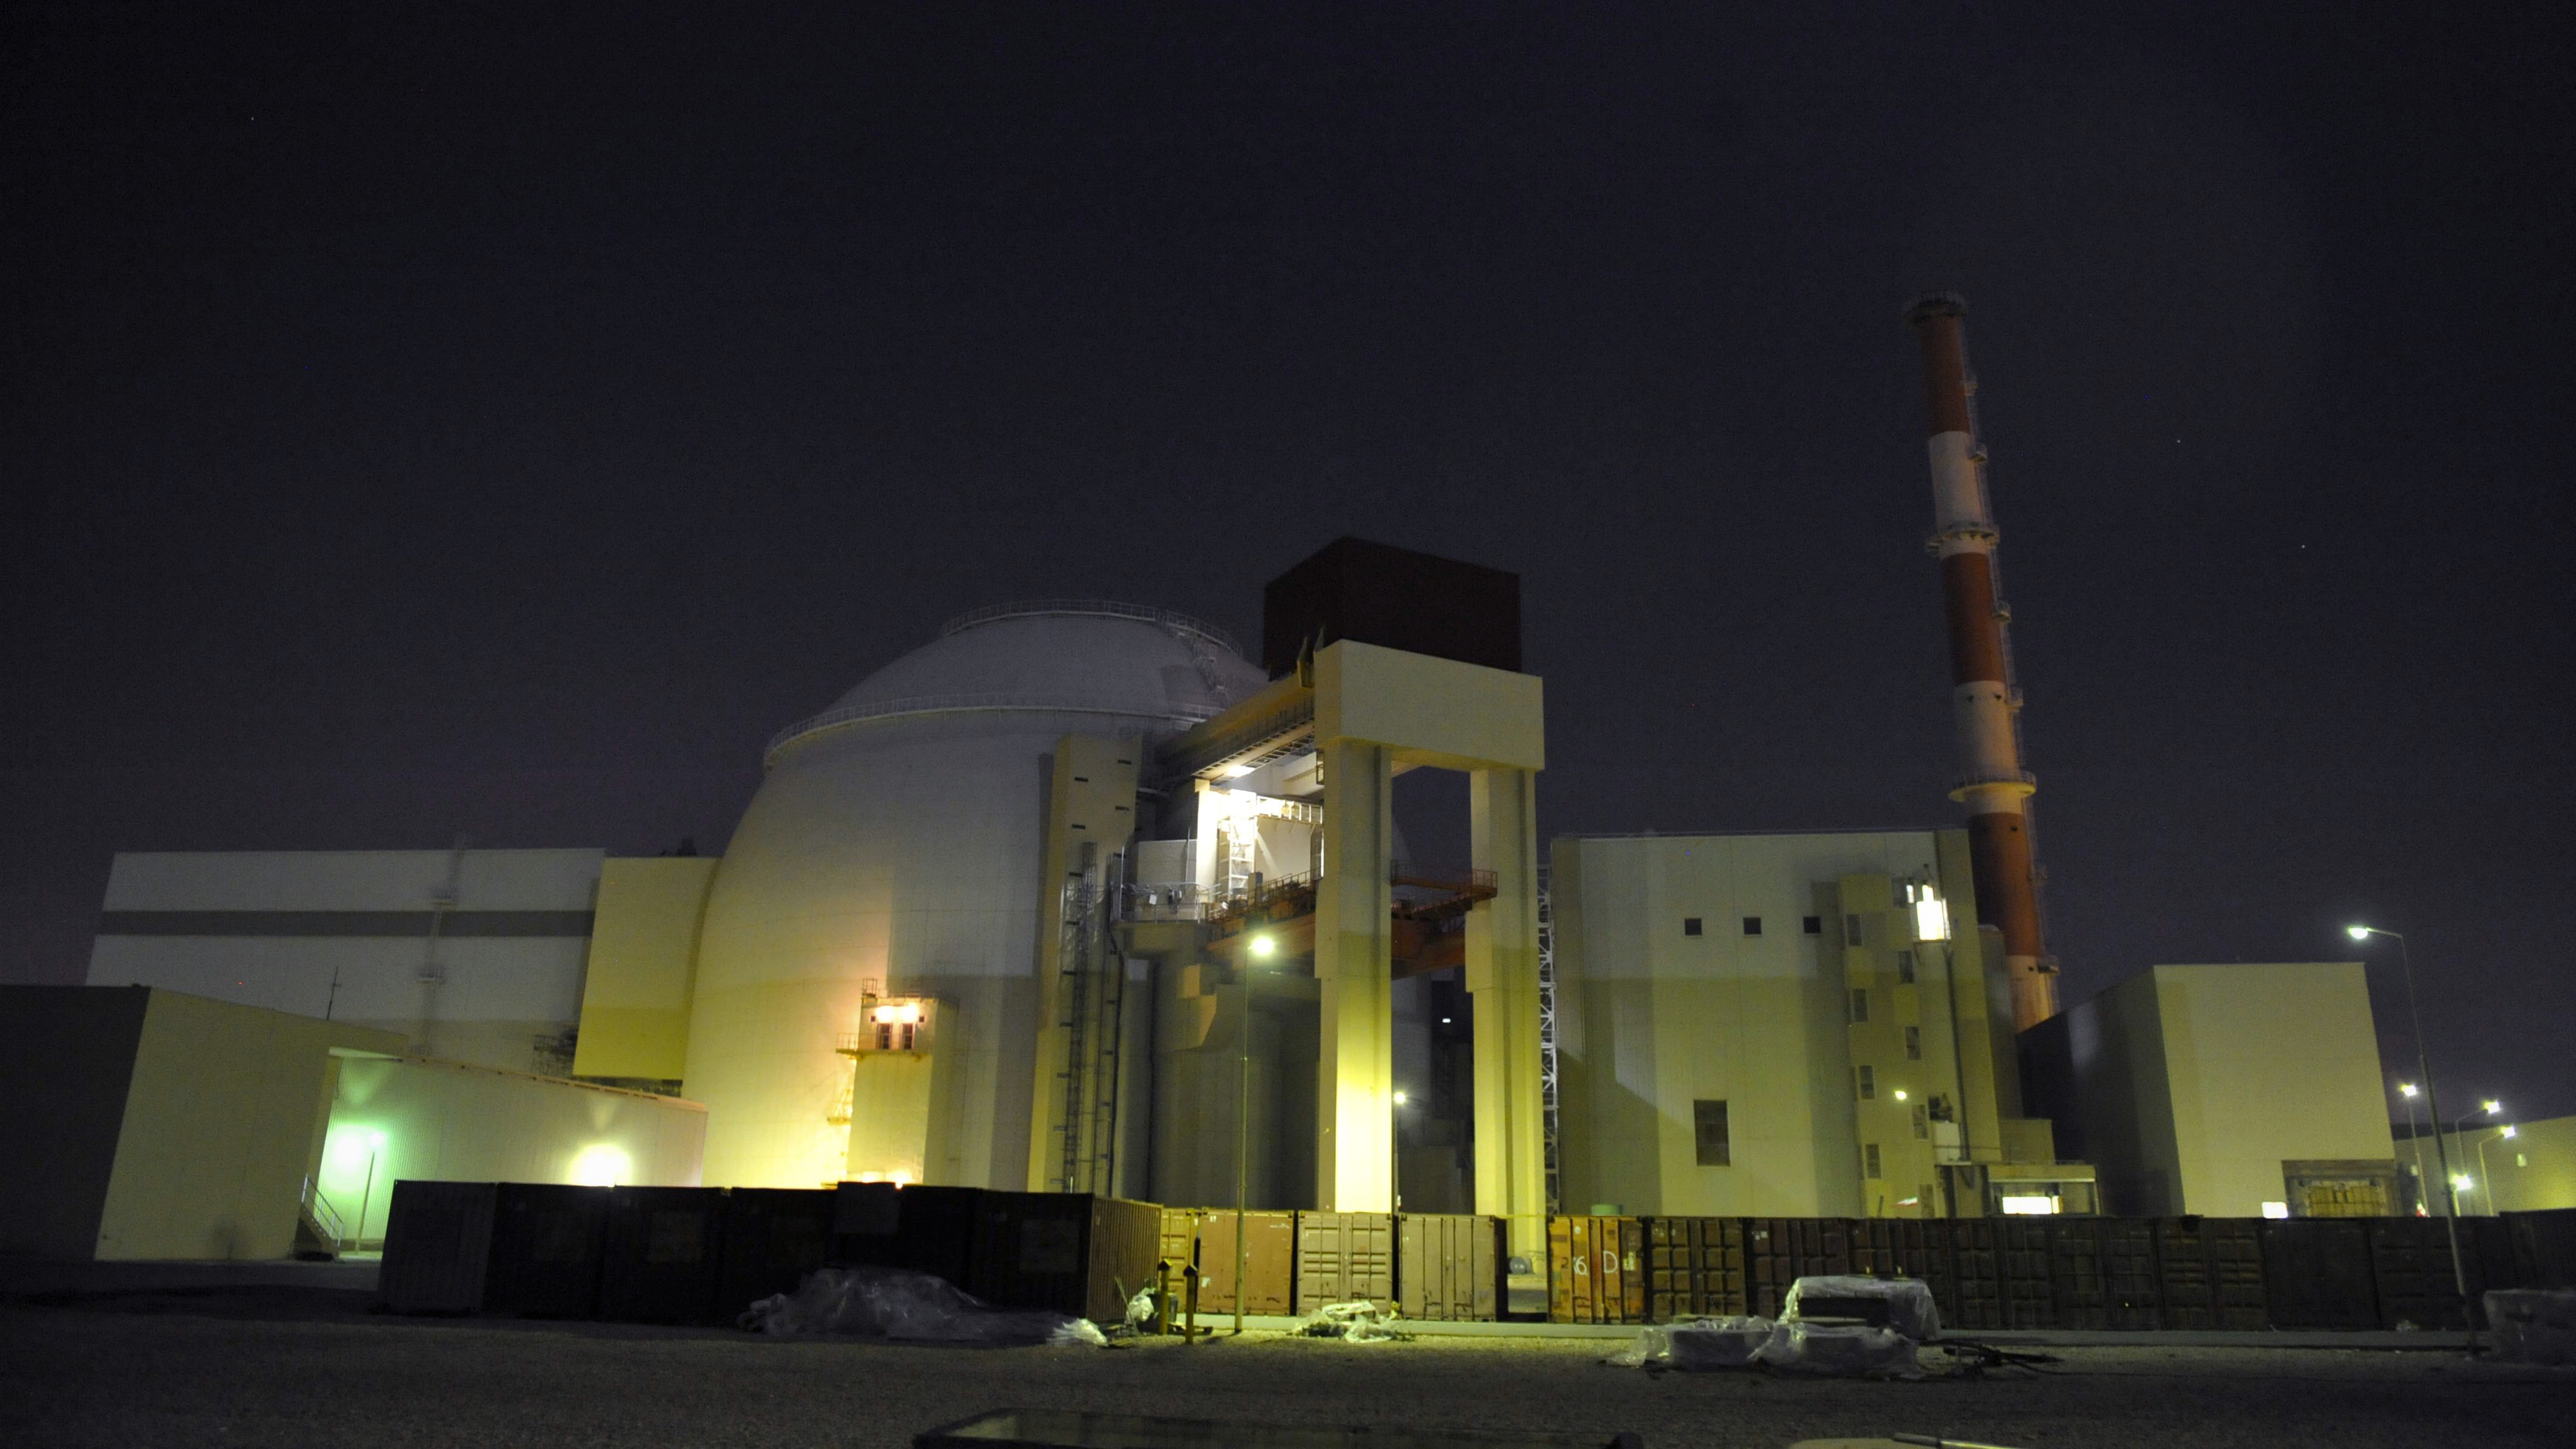 A general view of the nuclear power plant in Bushehr, Iran, about 800 miles south of Tehran